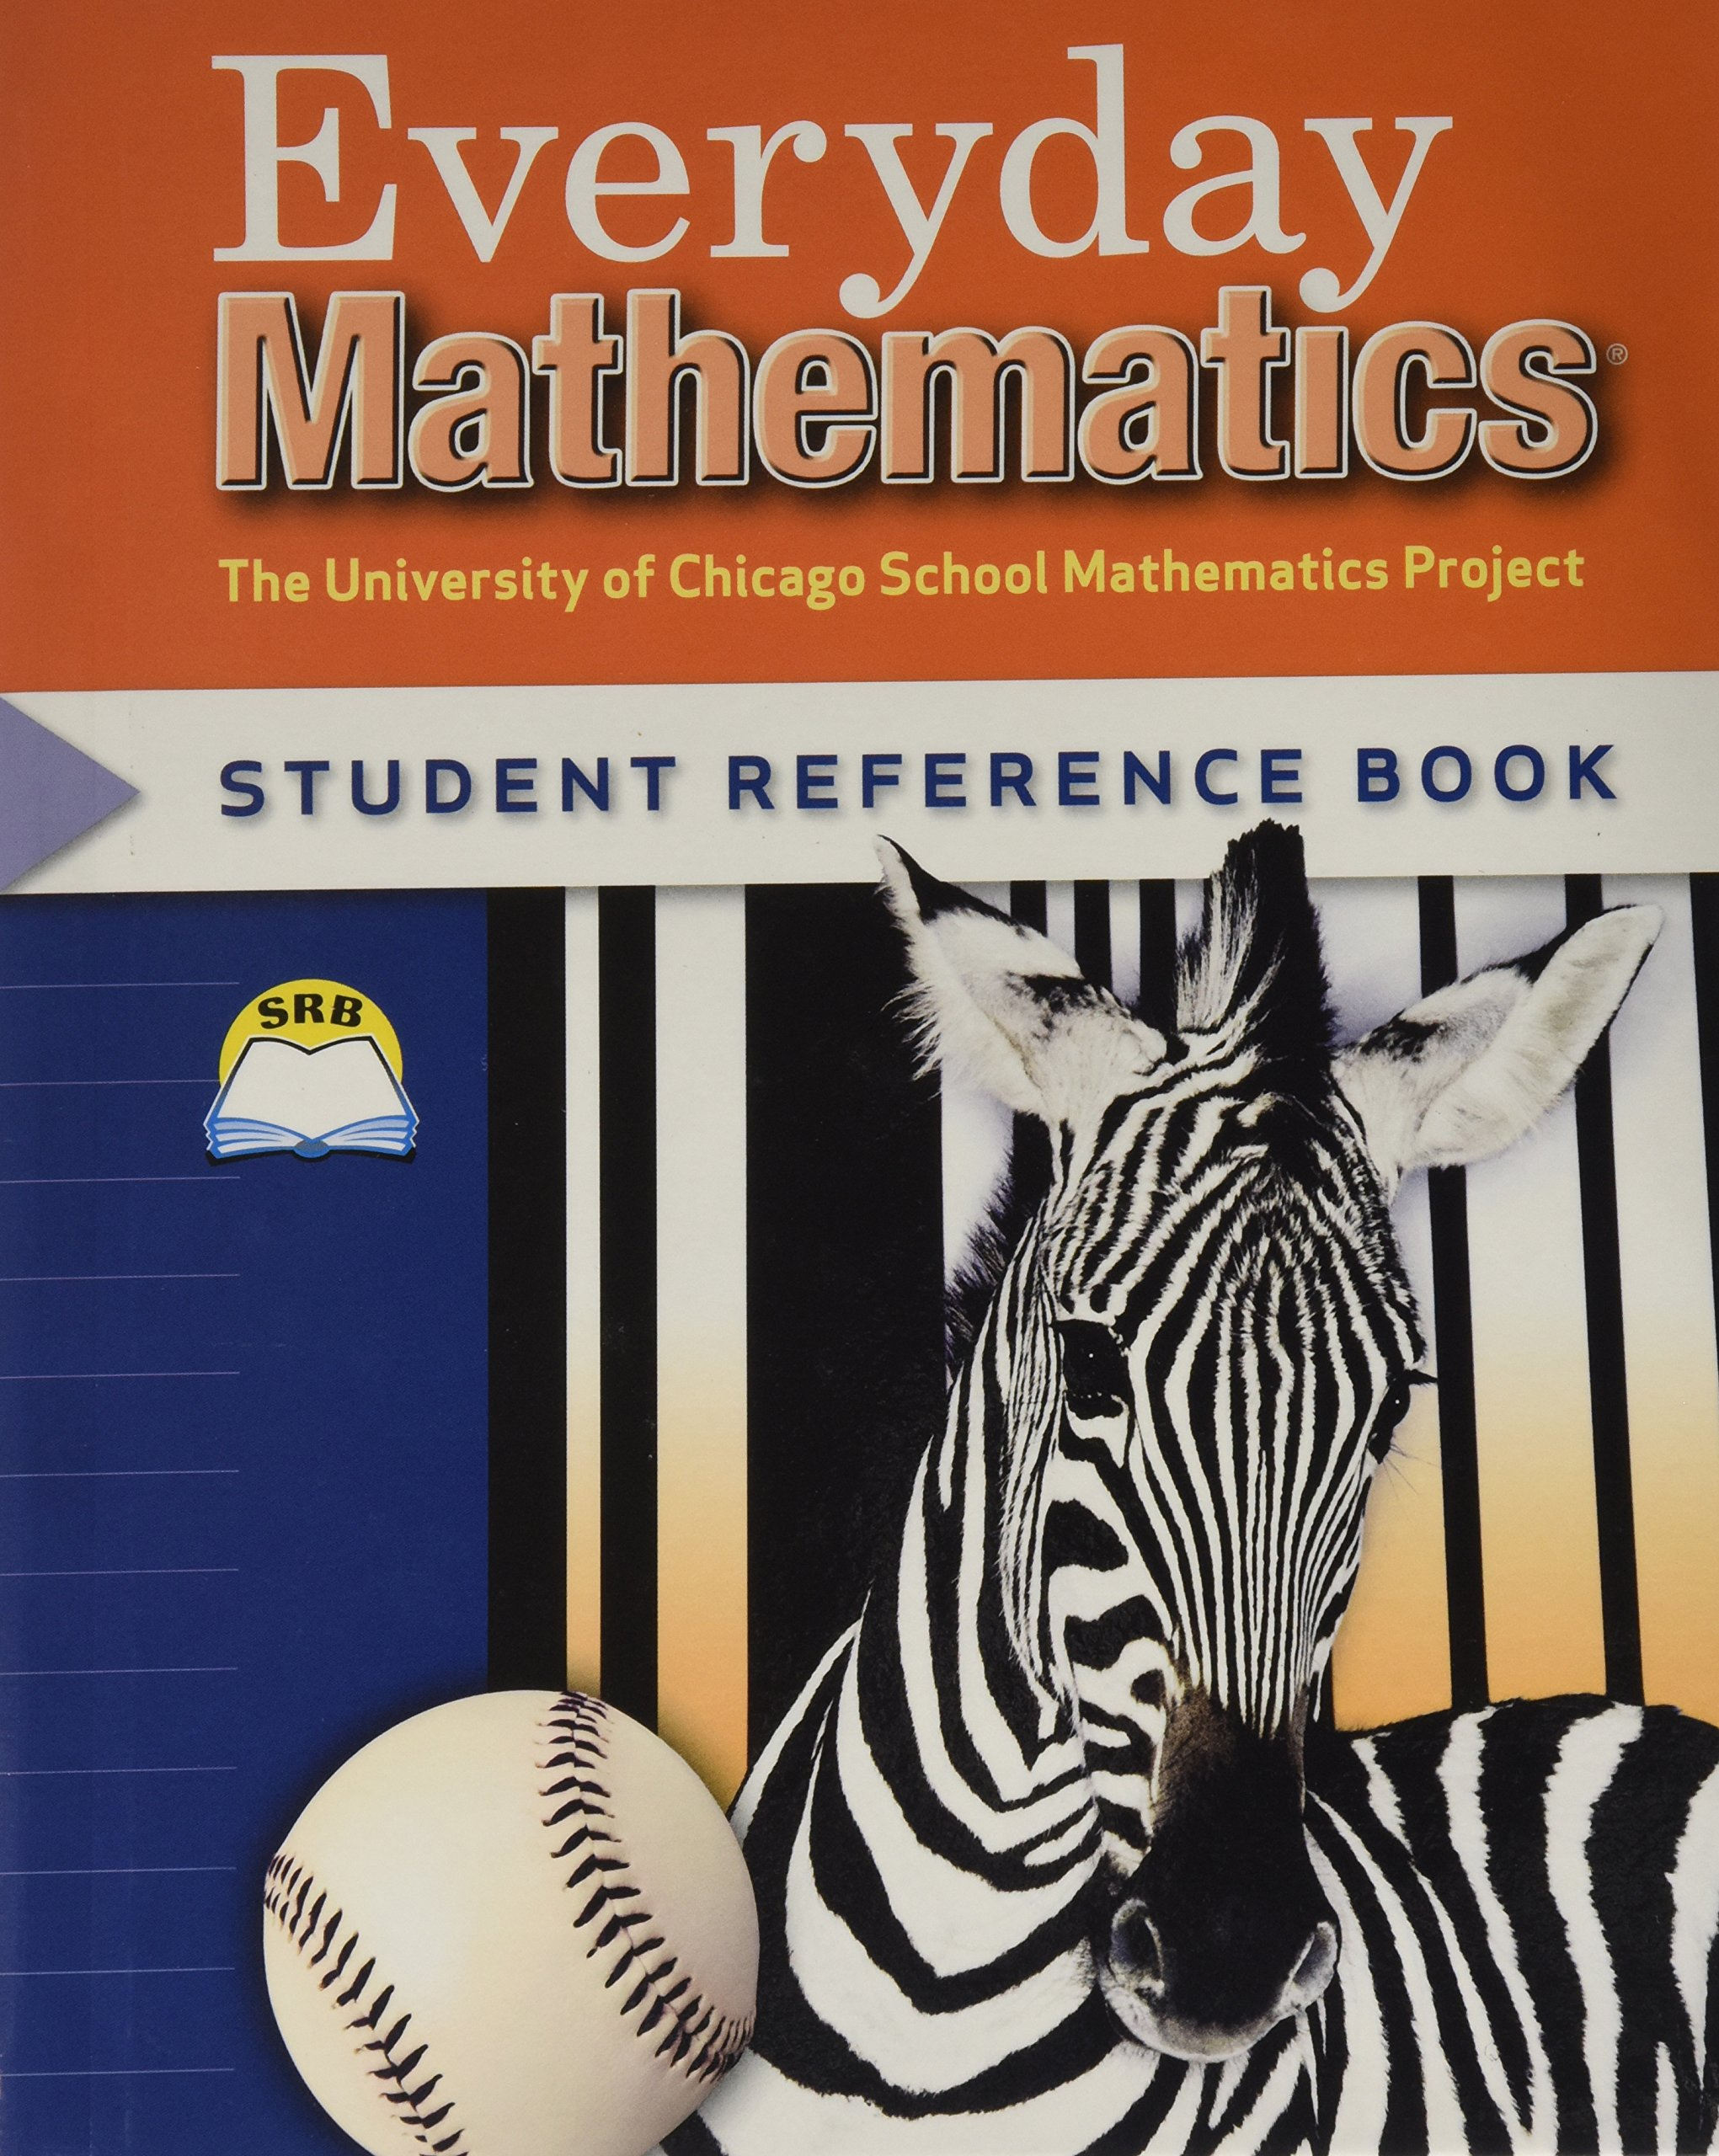 Student Reference Book for